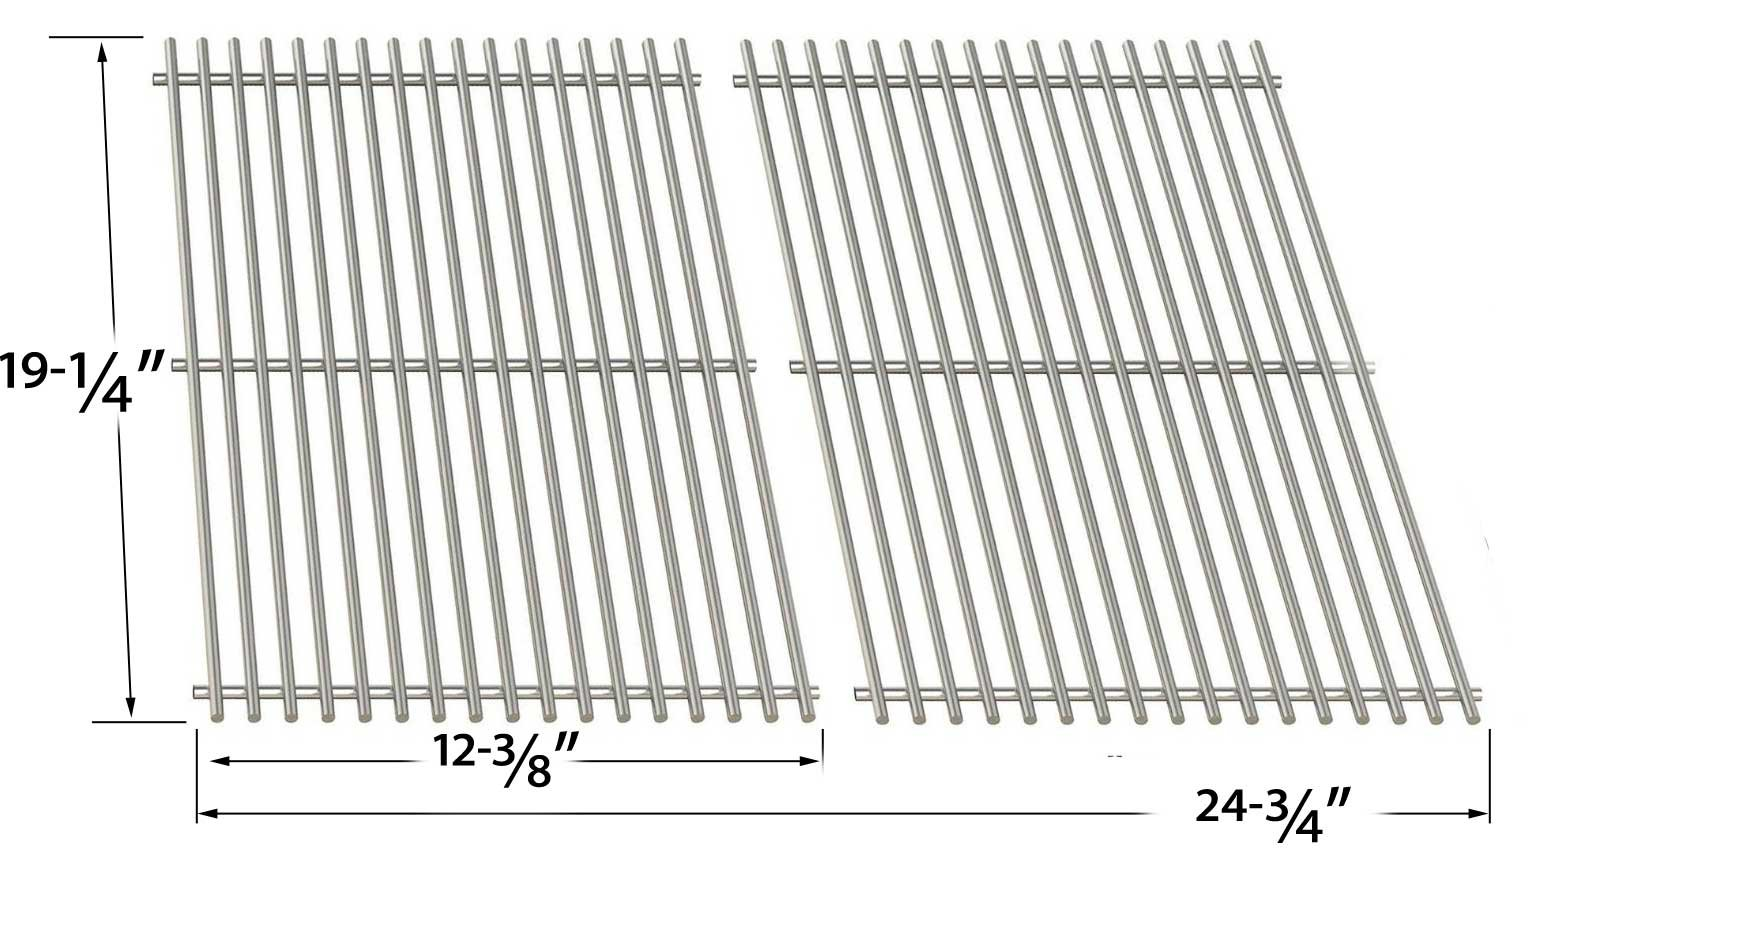 Charmglow 810-8530-S Replacement Kit Includes Heat Shields, Grill Burners & Stainless Cooking Grates